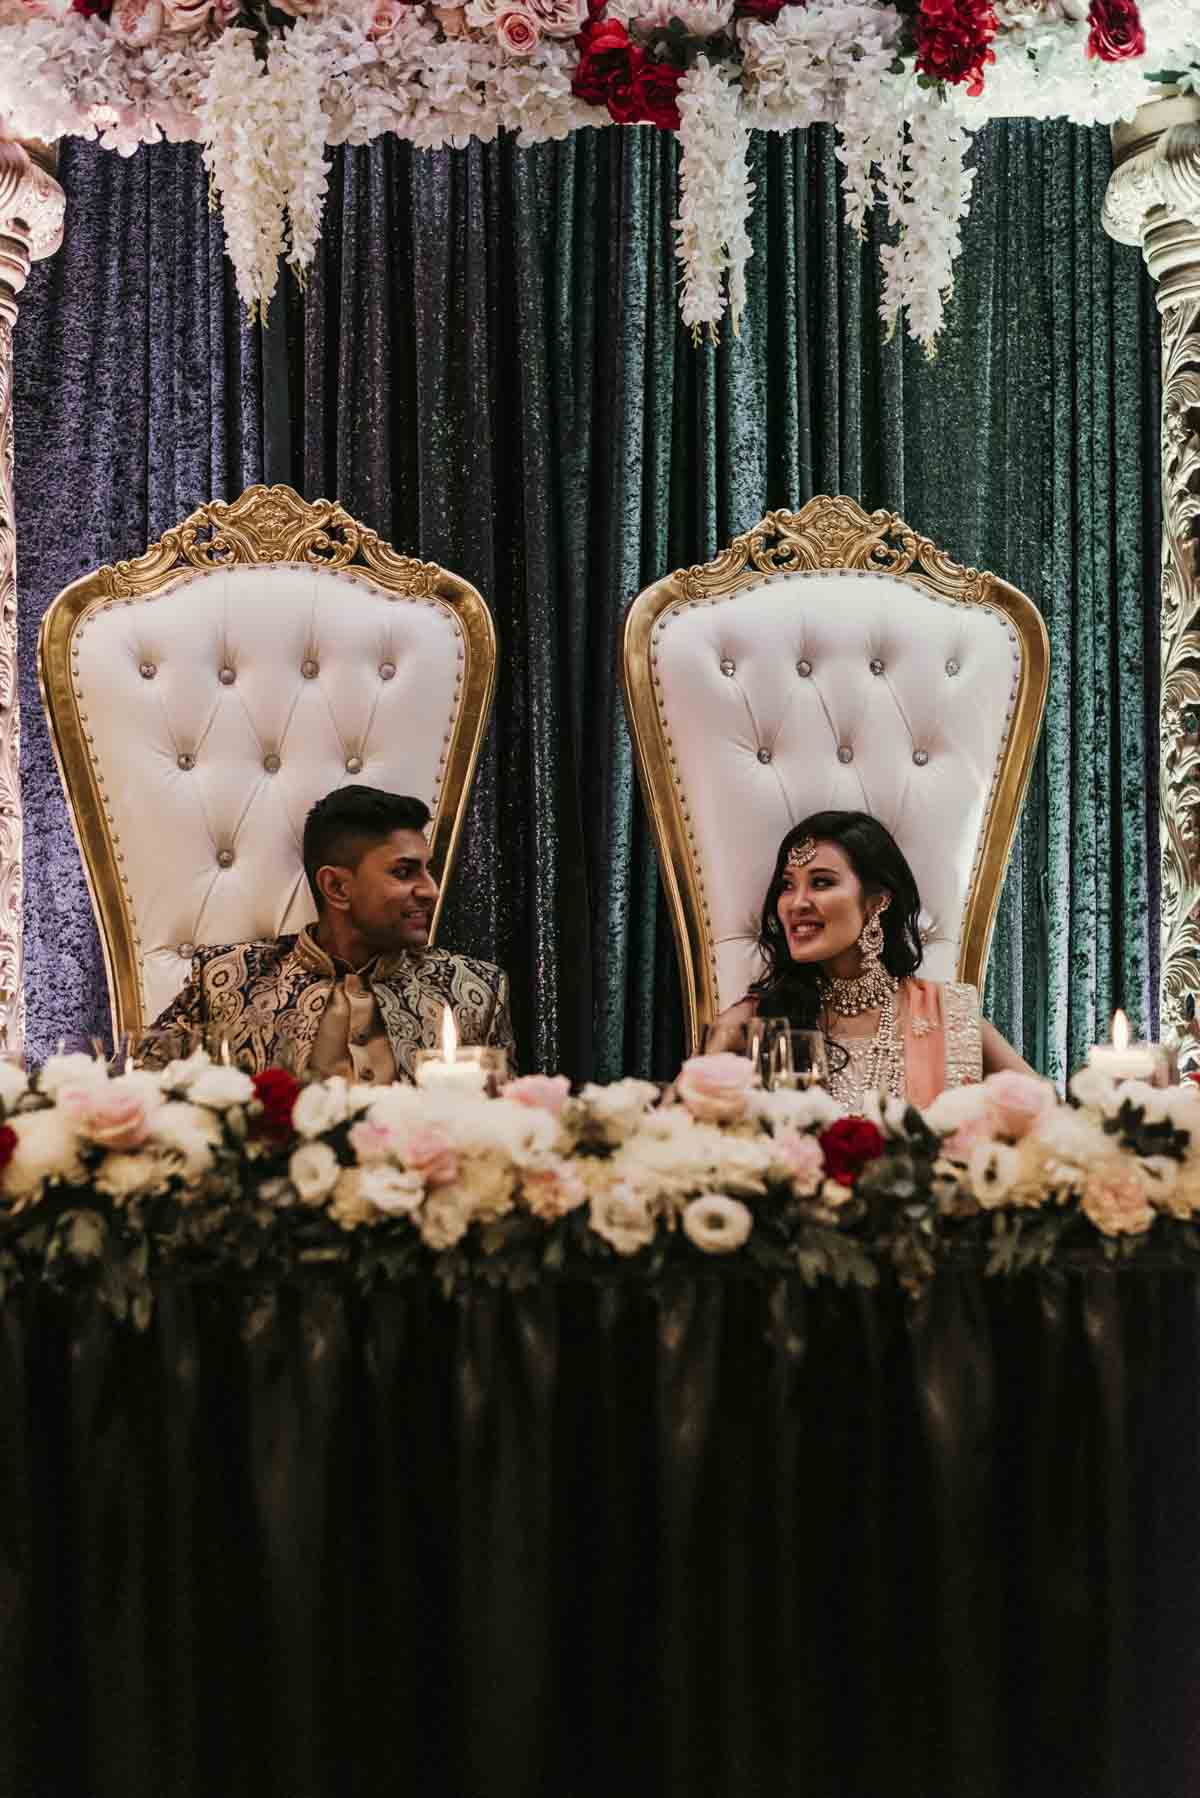 Shay and Uppi were treated like royalty, with Indian wedding decor specialists, Chandni Events setting up traditional Indian British-raj like throne chairs at their bridal party table. The wedding reception party took place at the Rydges Hotel in Brisbane.